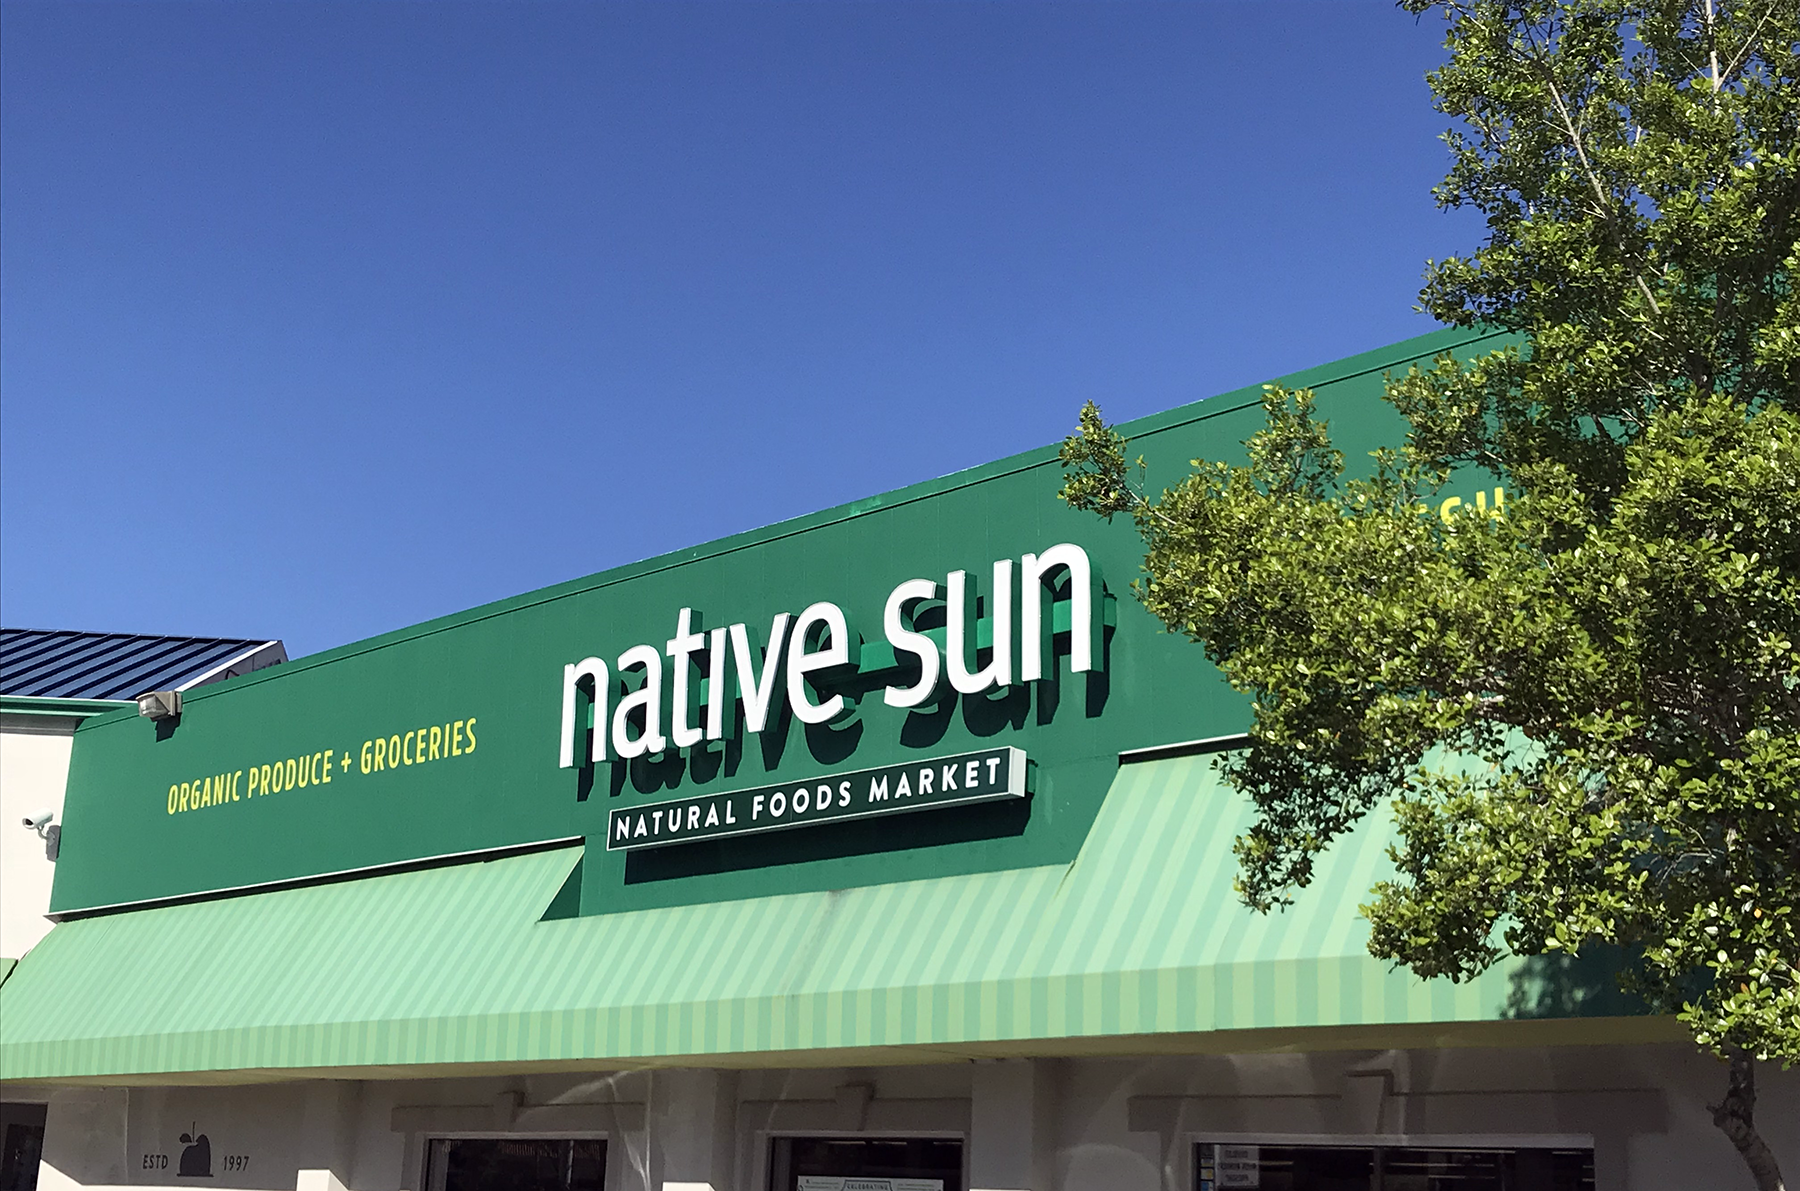 Native SunMandarin - is our original store. We first opened the doors in February 1997 and offered 98% vegetarian and organic grocery. We've expanded the store since then and we are now proud to offer the local community a full-service, organic grocery experience. Don't miss the fresh, organic juice bar and deli, kombucha on tap, and gluten-free baked goods!